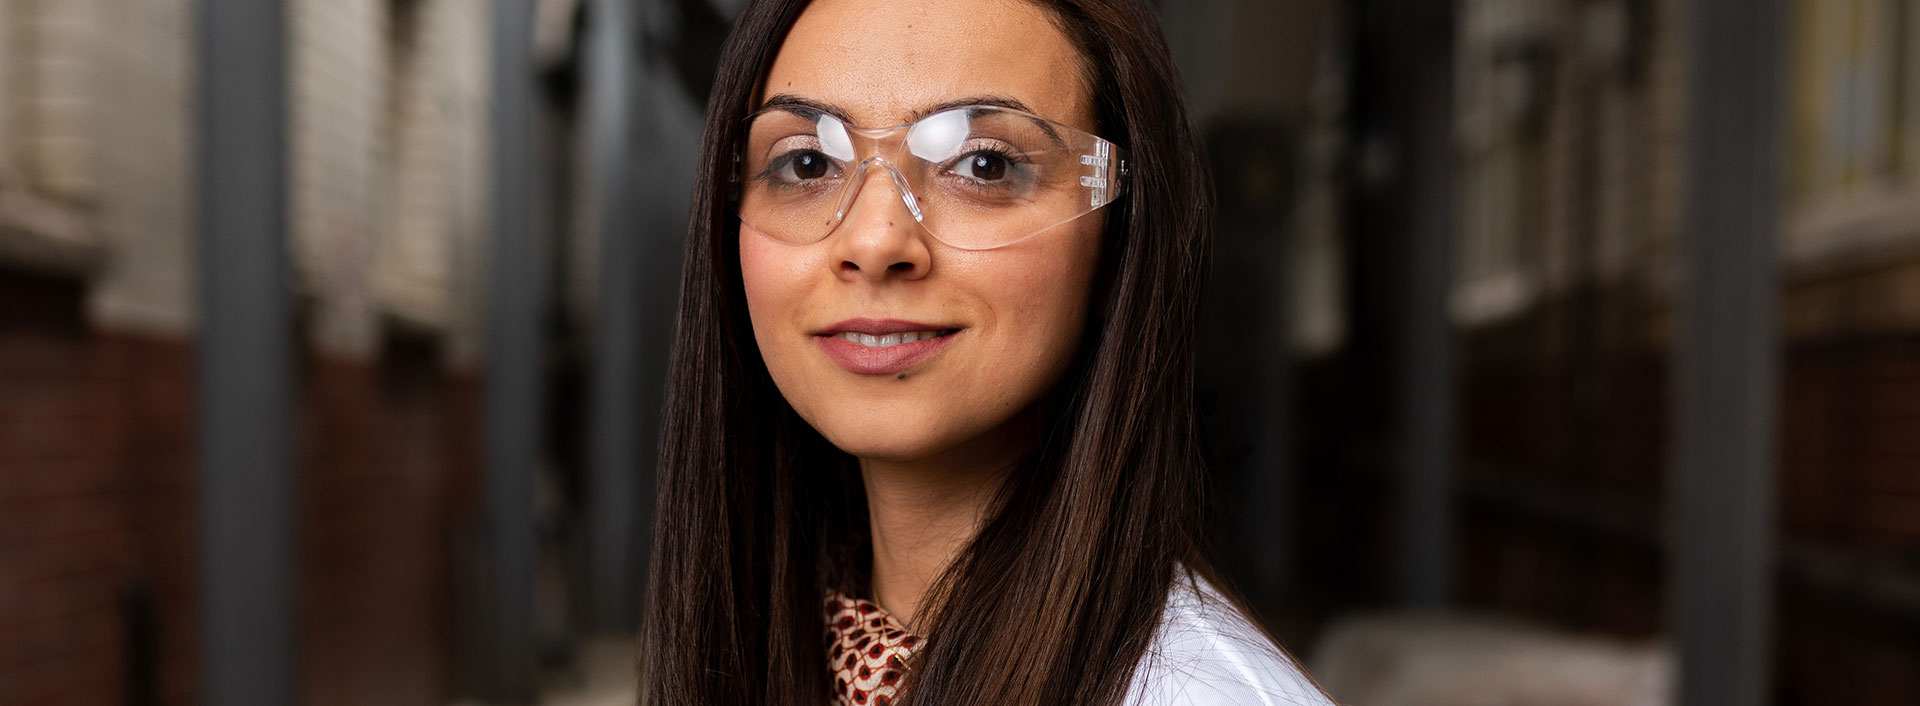 Photo of a woman wearing protective eye gear.